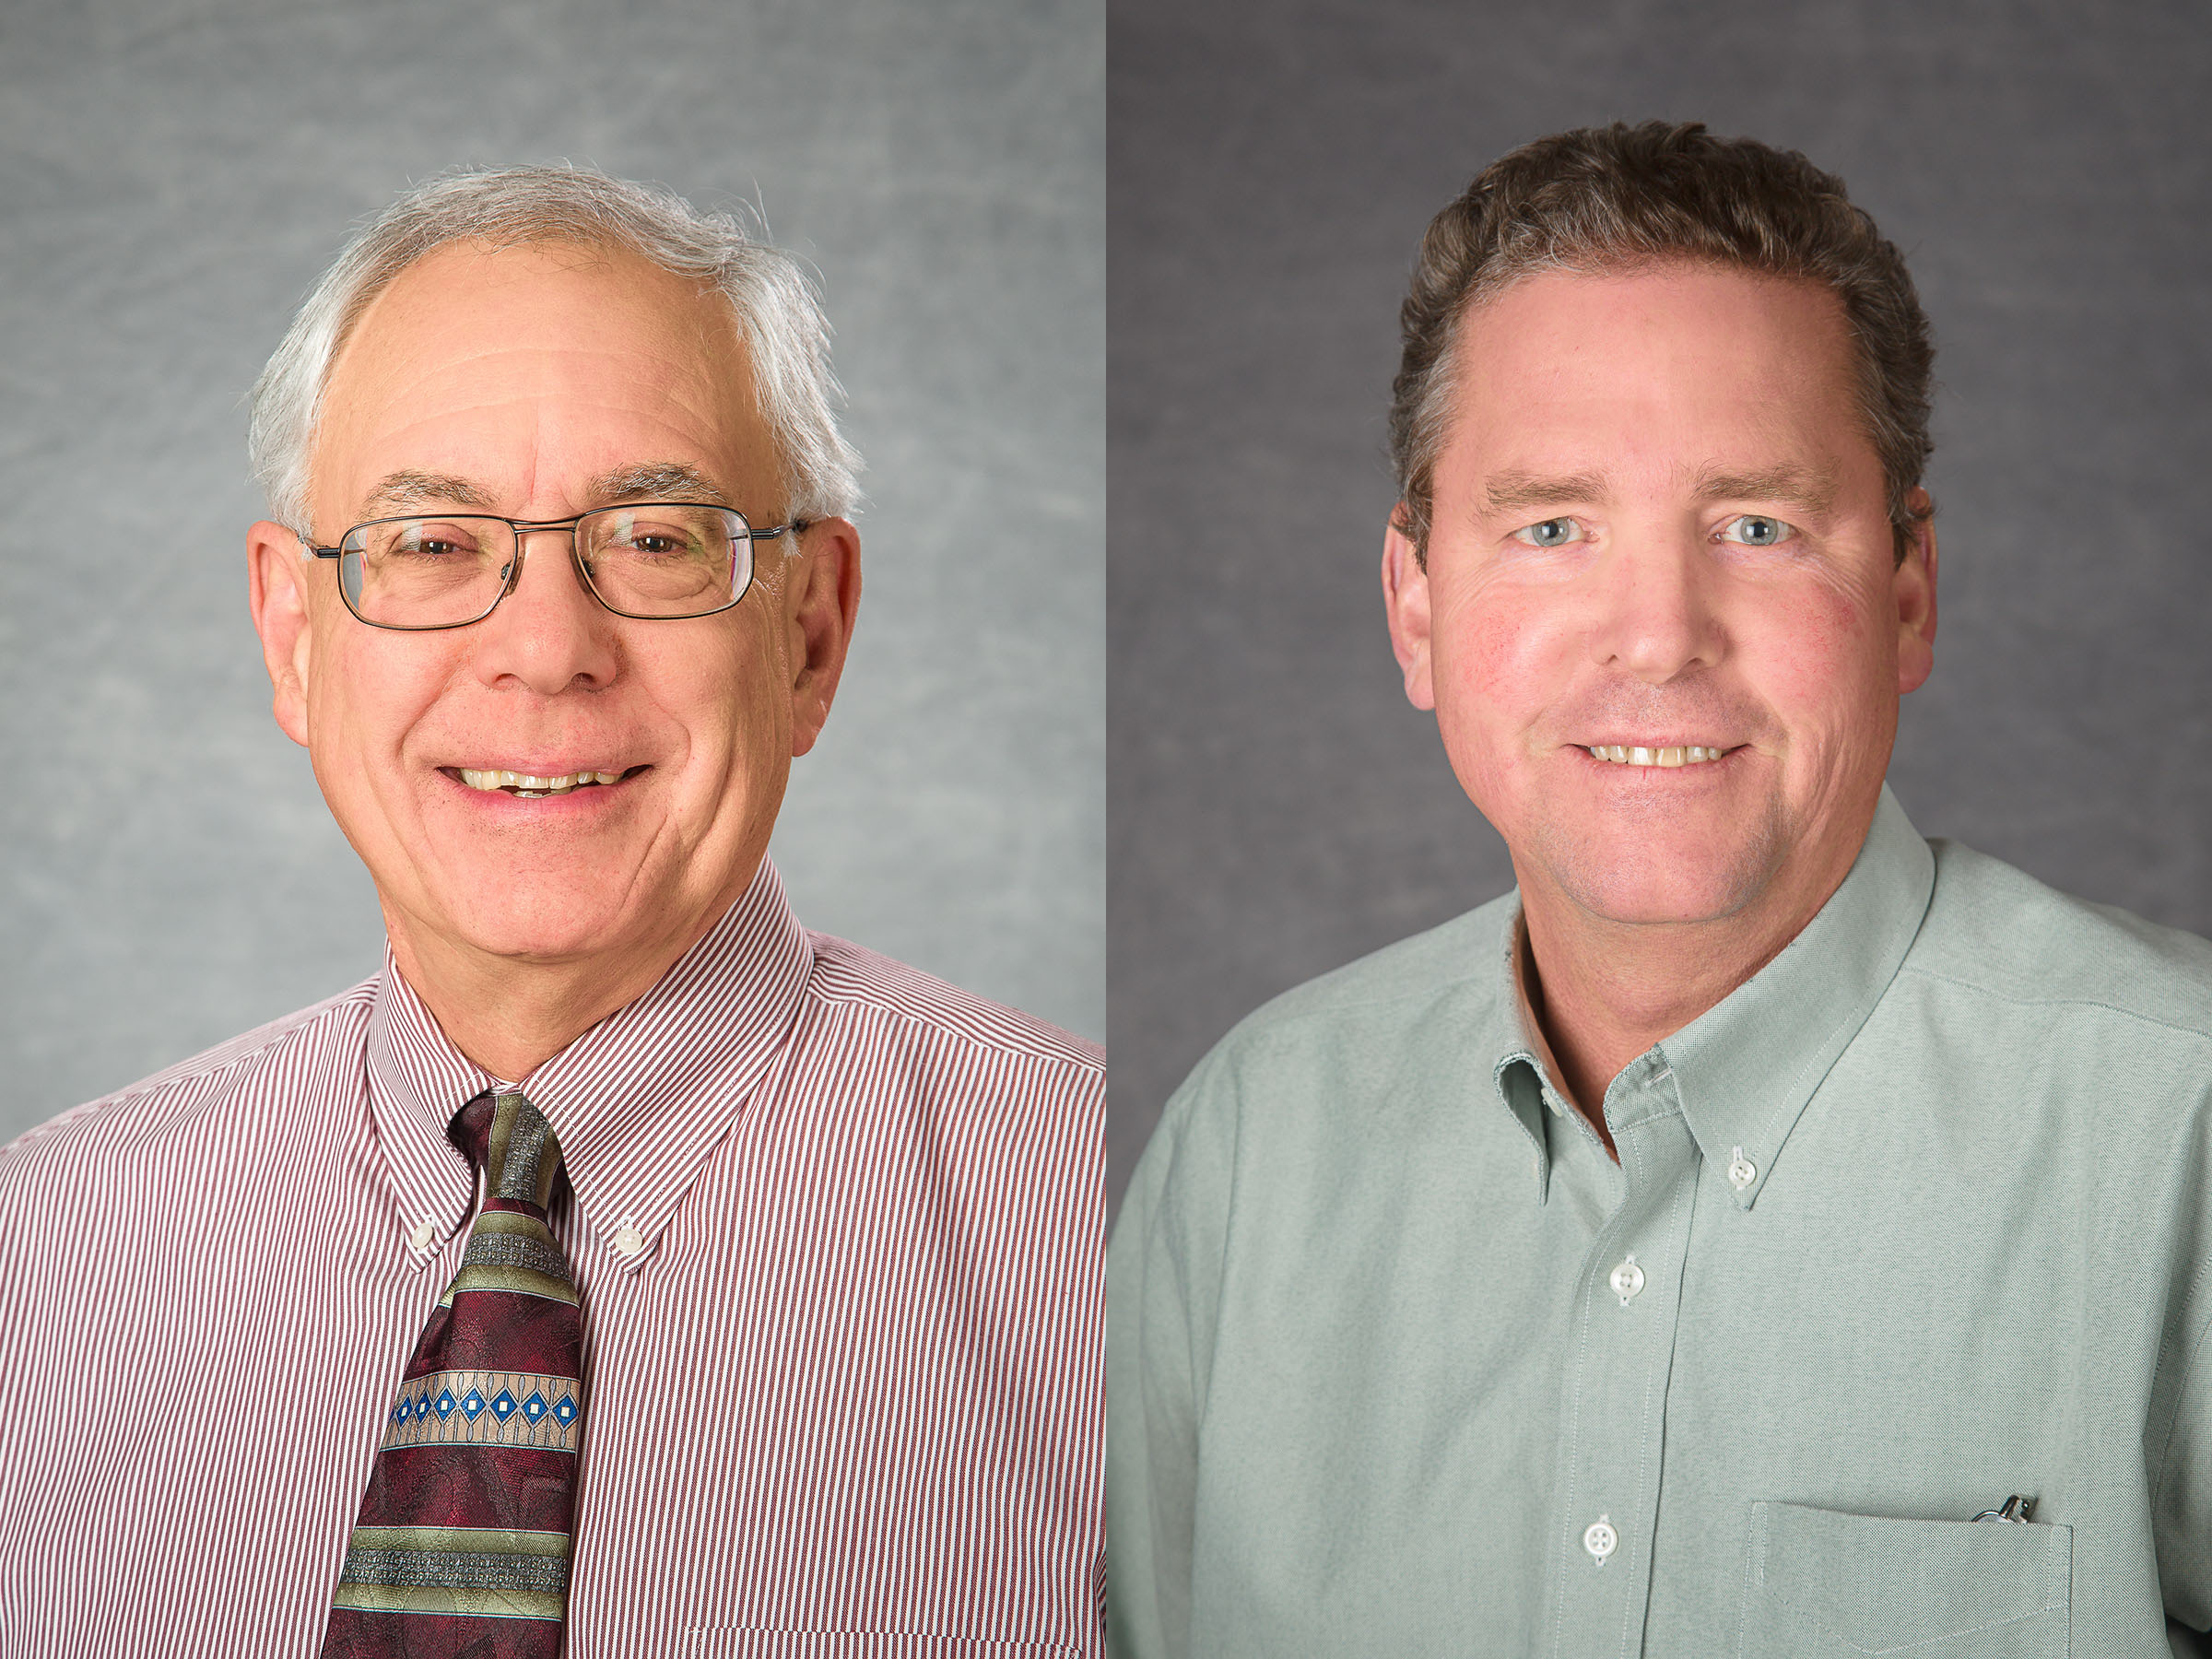 University of Kentucky animal scientists bring home multiple honors